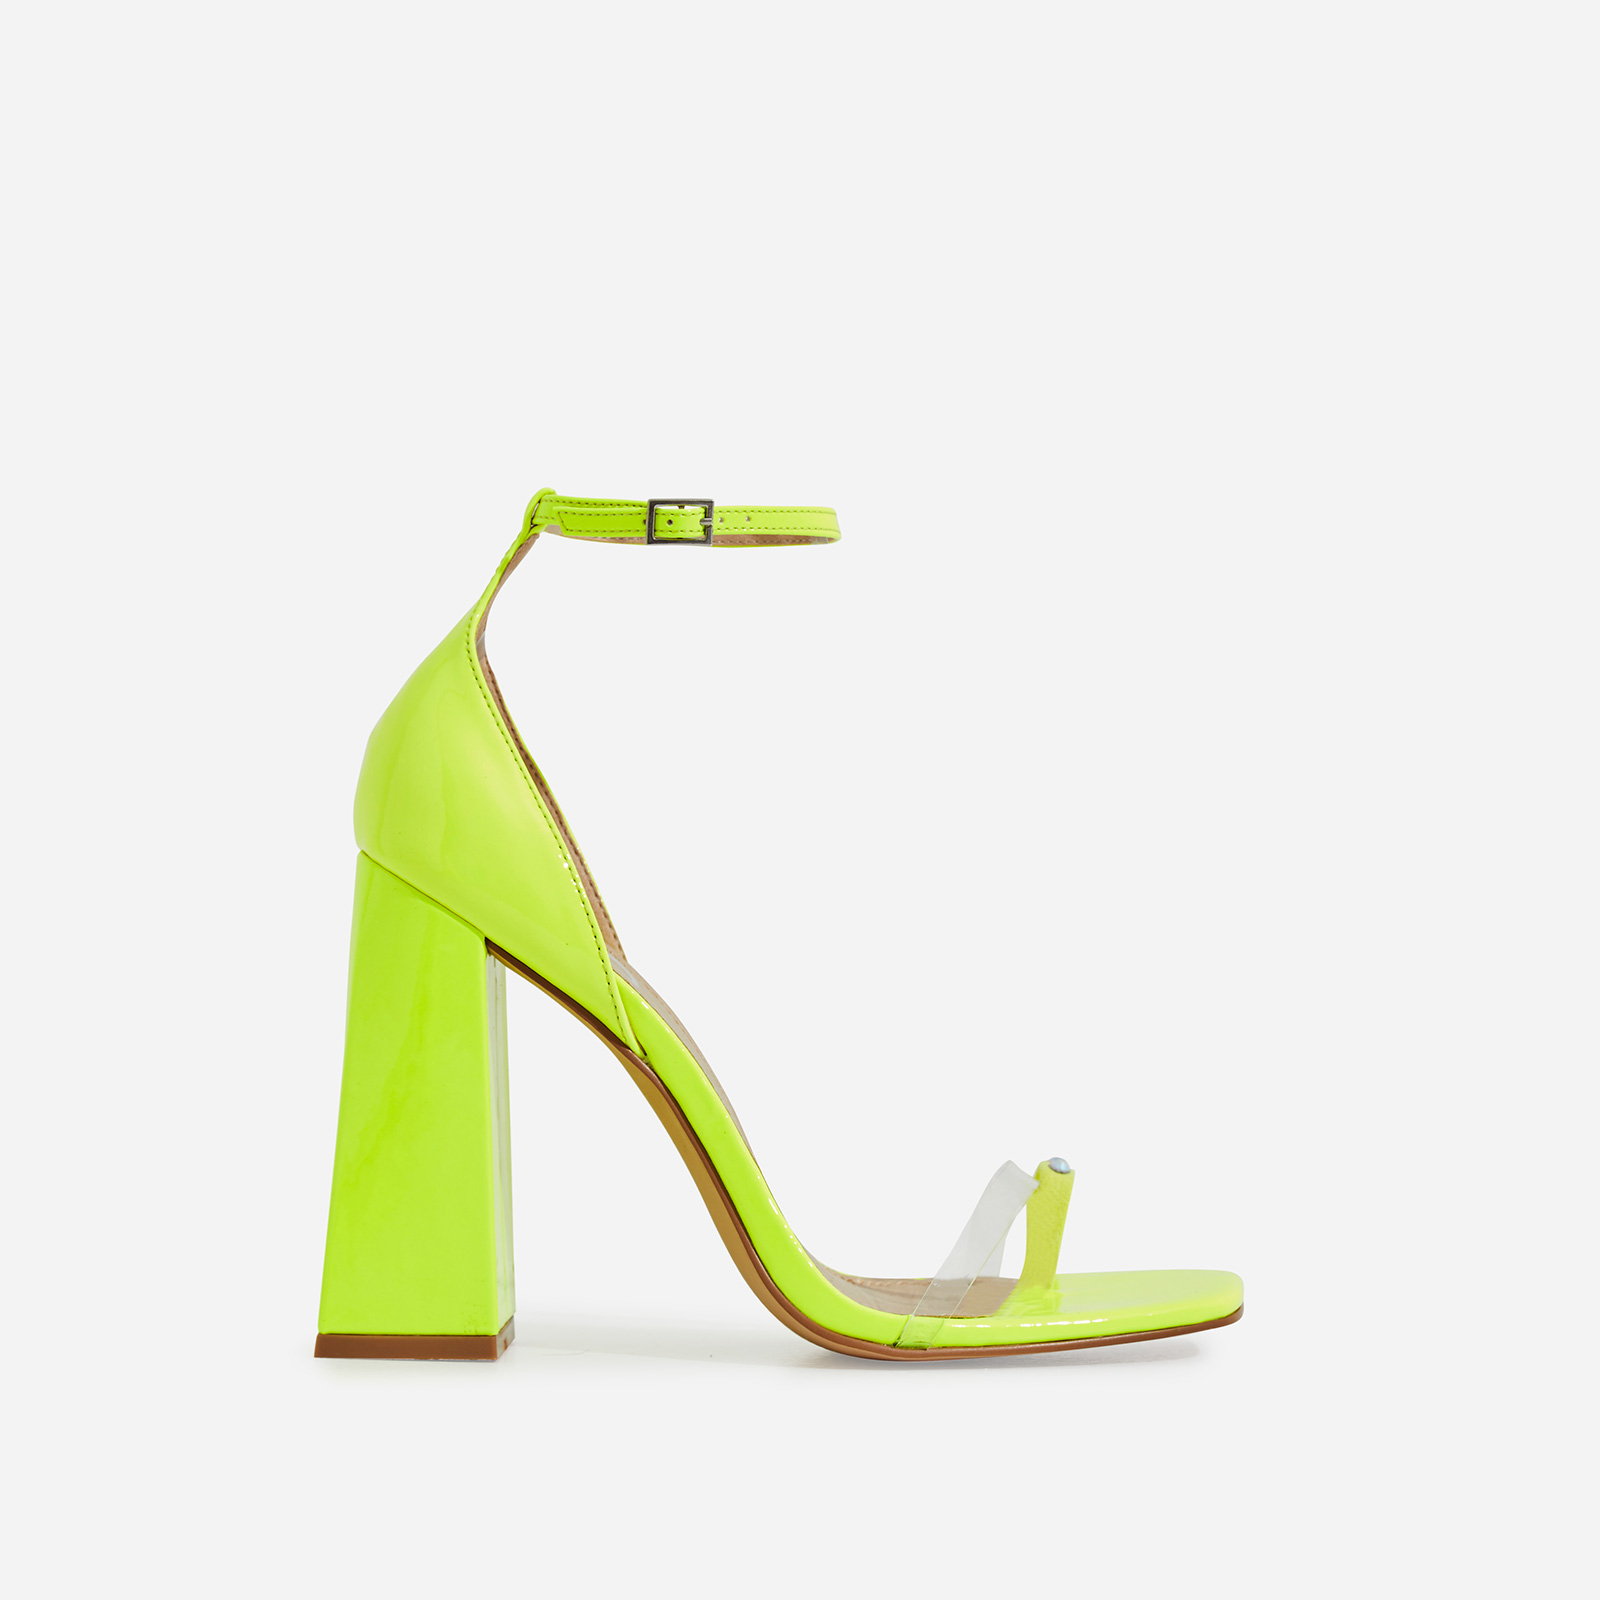 Perch Diamante Detail Strap Square Toe Perspex Flared Block Heel In Neon Yellow Patent